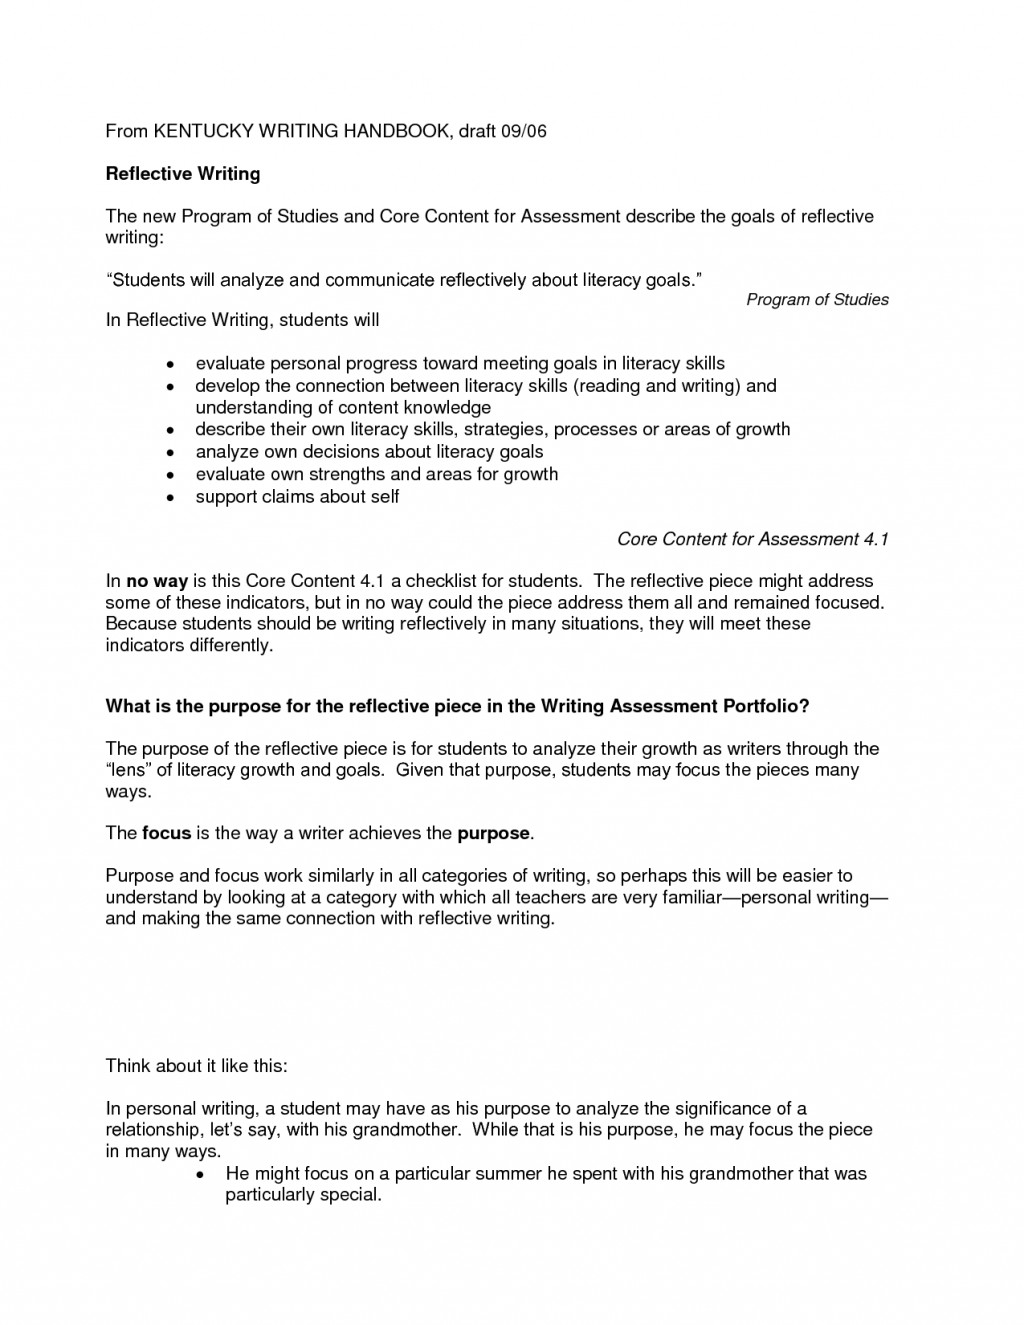 009 Reflective Essay Definition Example Nursing Writing 576466 Excellent Pdf Meaning In Telugu Personal Reflection Large